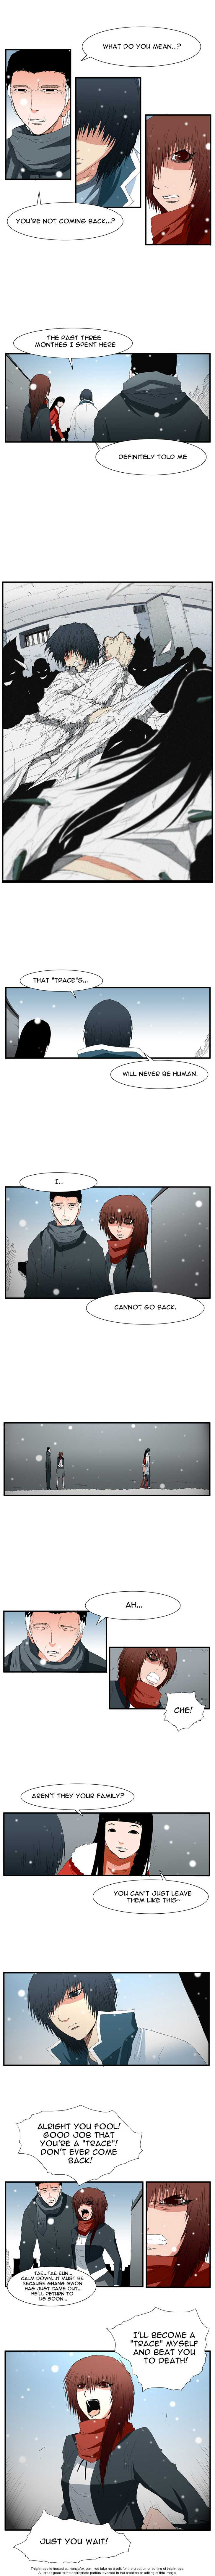 Trace 1 Page 2